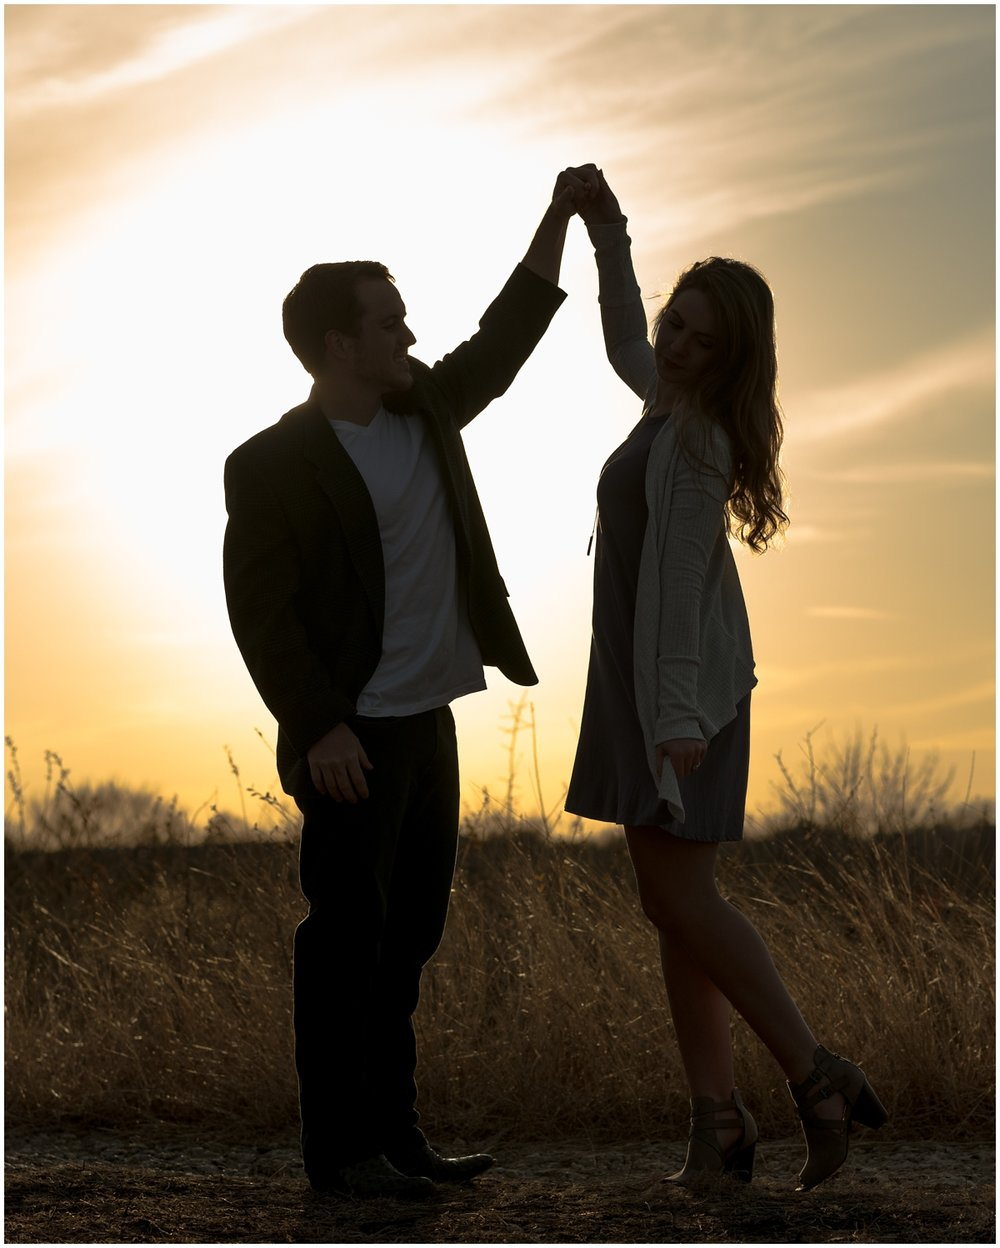 Bright and classic Fort Worth Texas Open Field Engagement Session with DFW Wedding, Engagement and Family Photographer Rachel Florman Creative. Located at Tandy Hills Nature Center